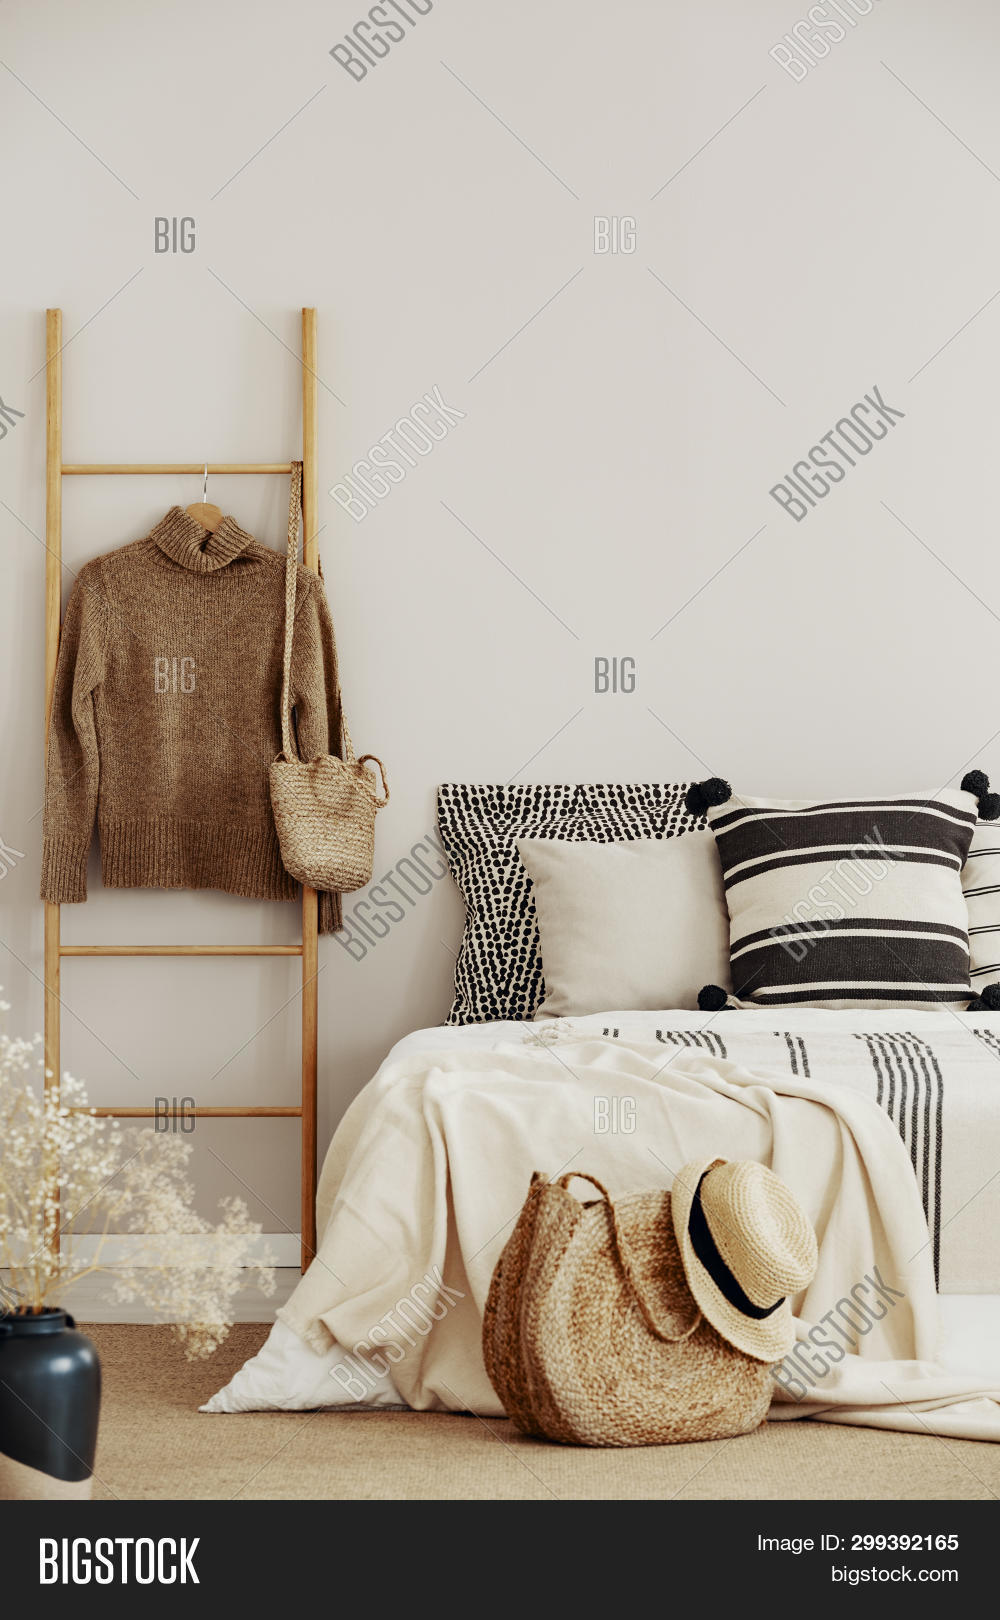 Wooden Ladder Sweater Image Photo Free Trial Bigstock